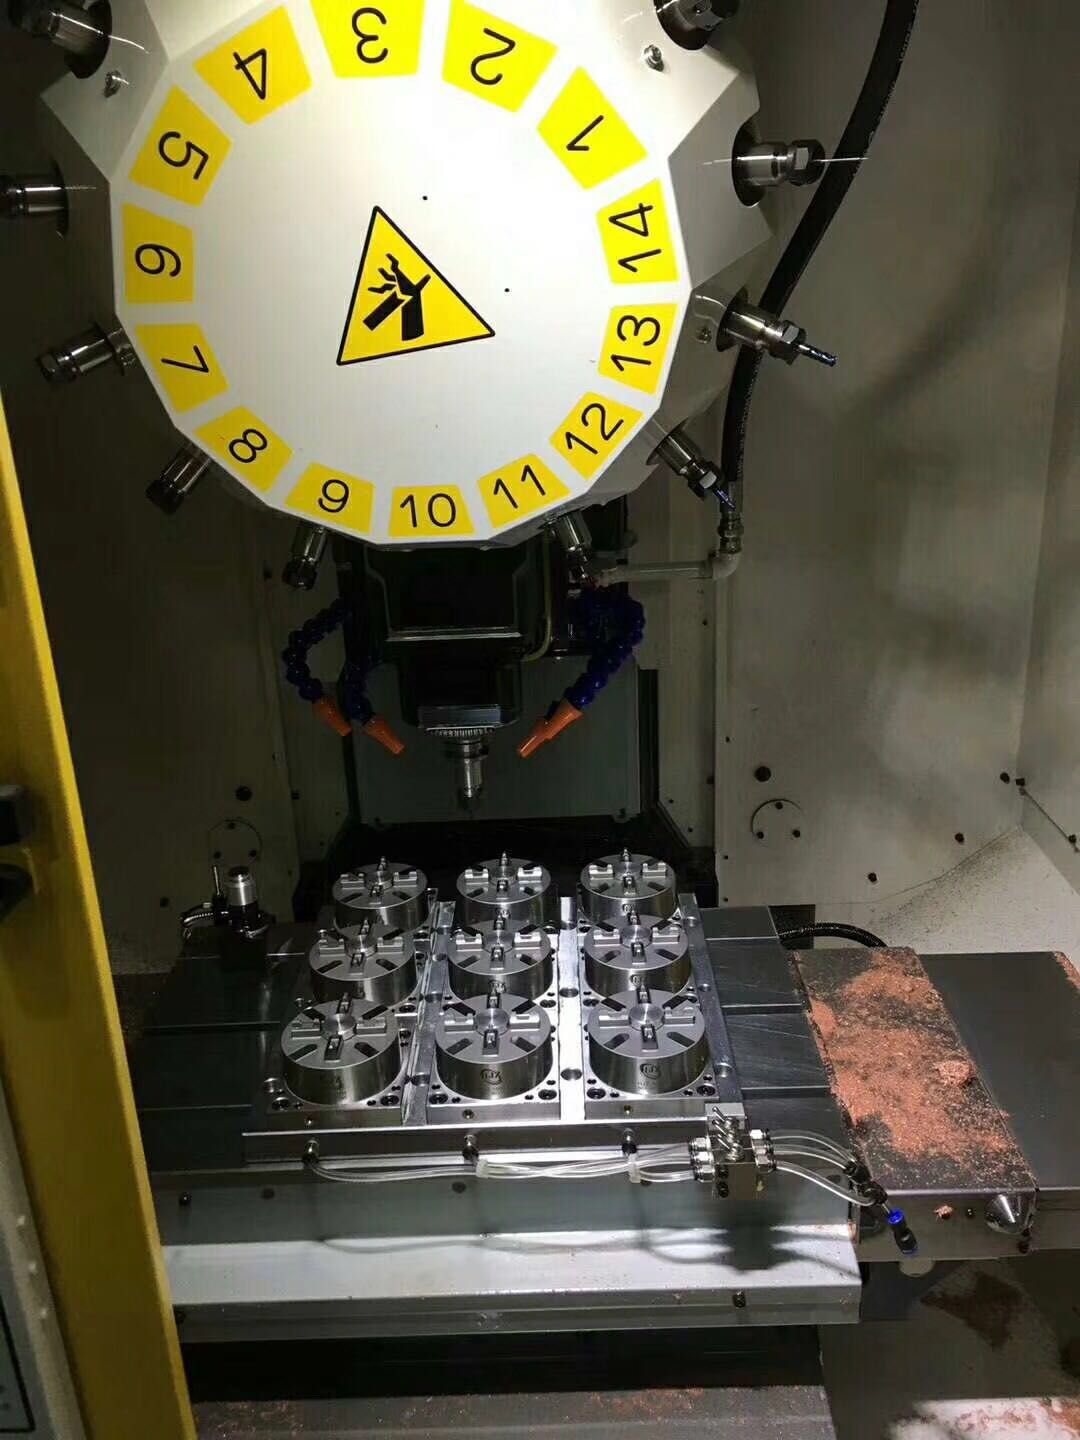 Pin by Alan wang on erowa system 3R workholding system in